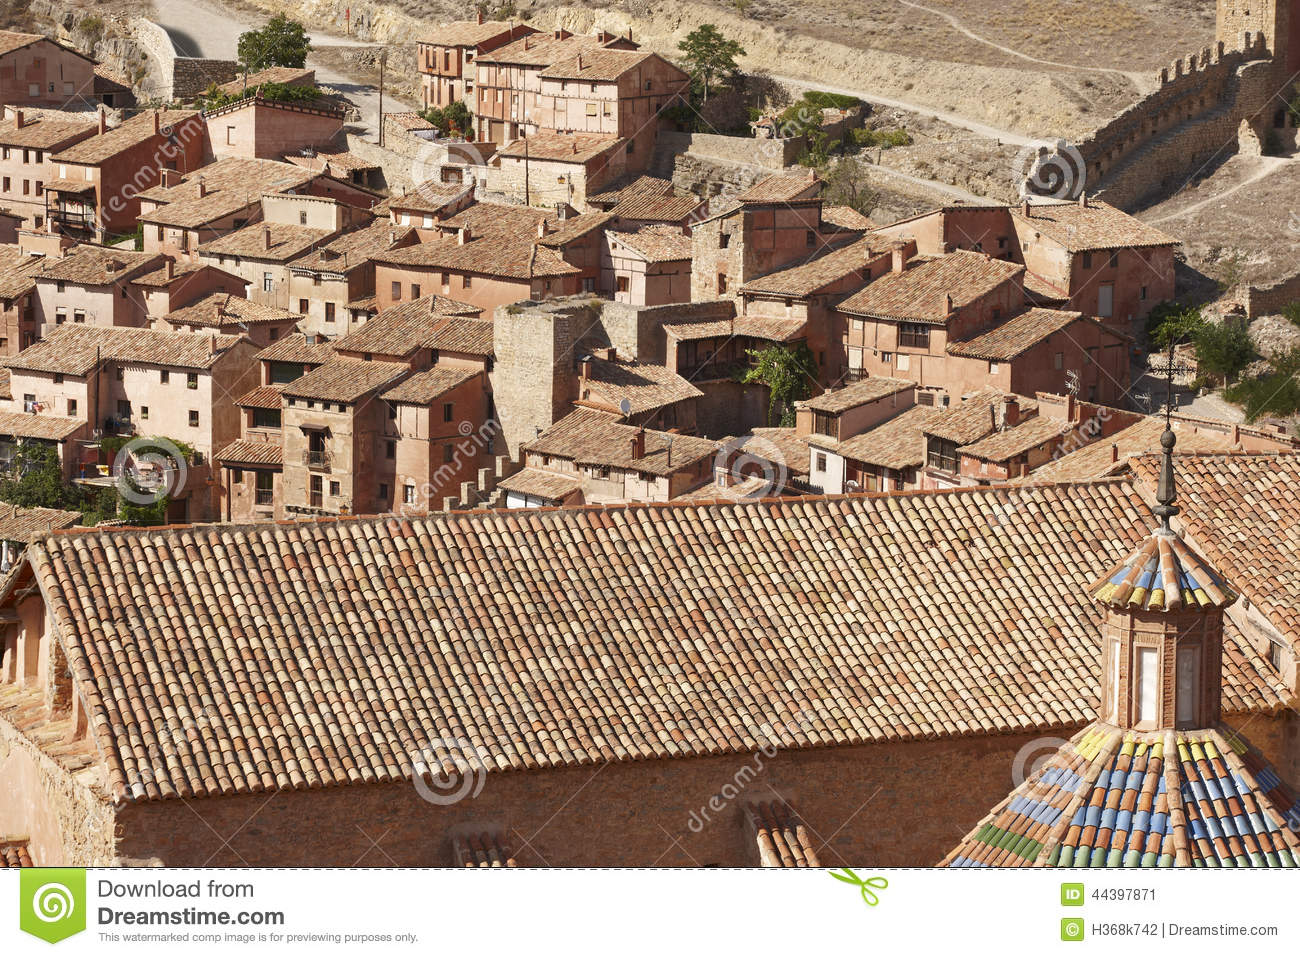 Tile Roof Detail In The Picturesque Village Of Albarracin